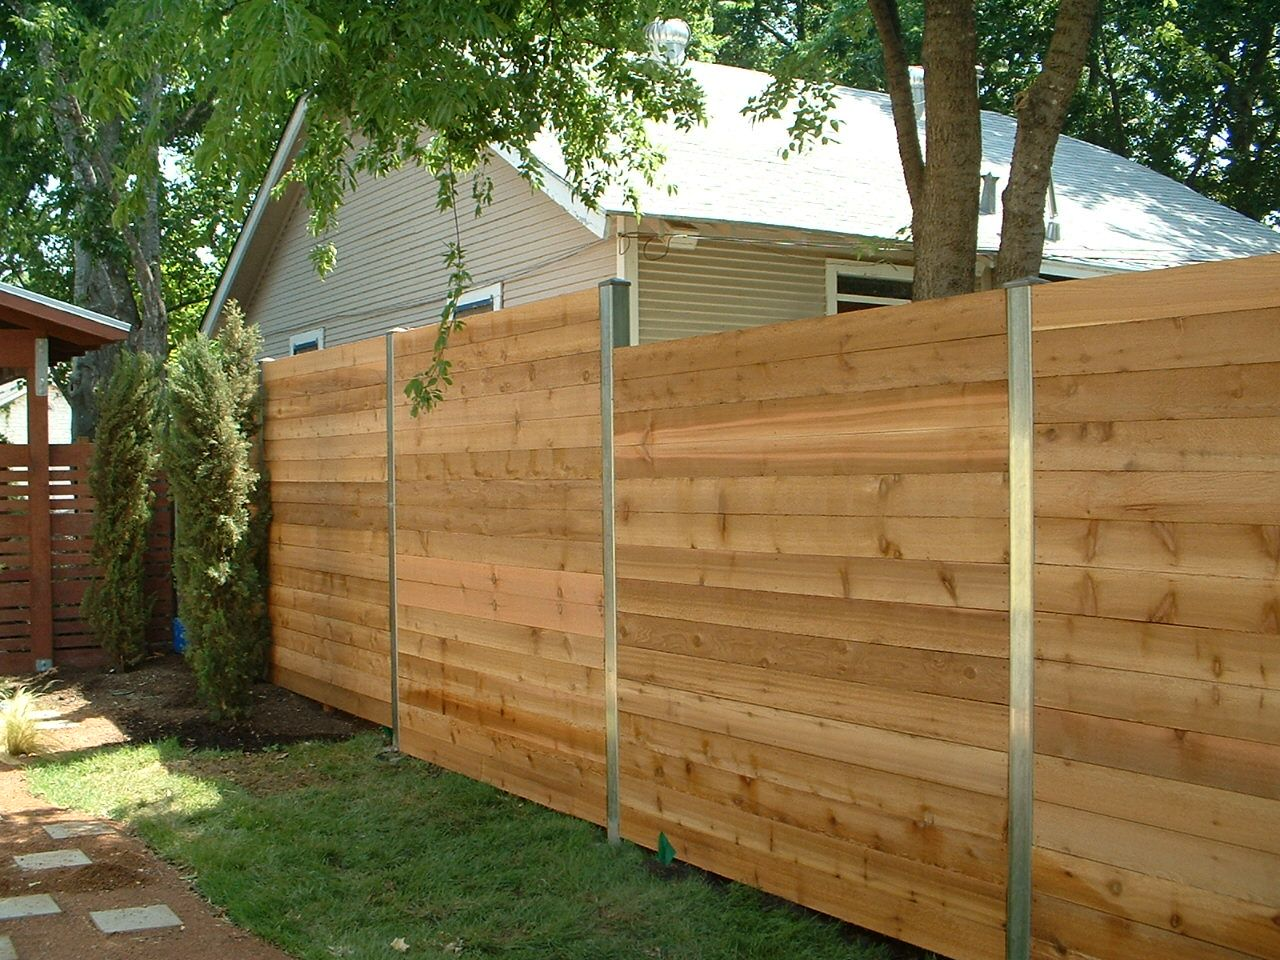 Stairstepped Custom Horizontal Steel Posts Fences To